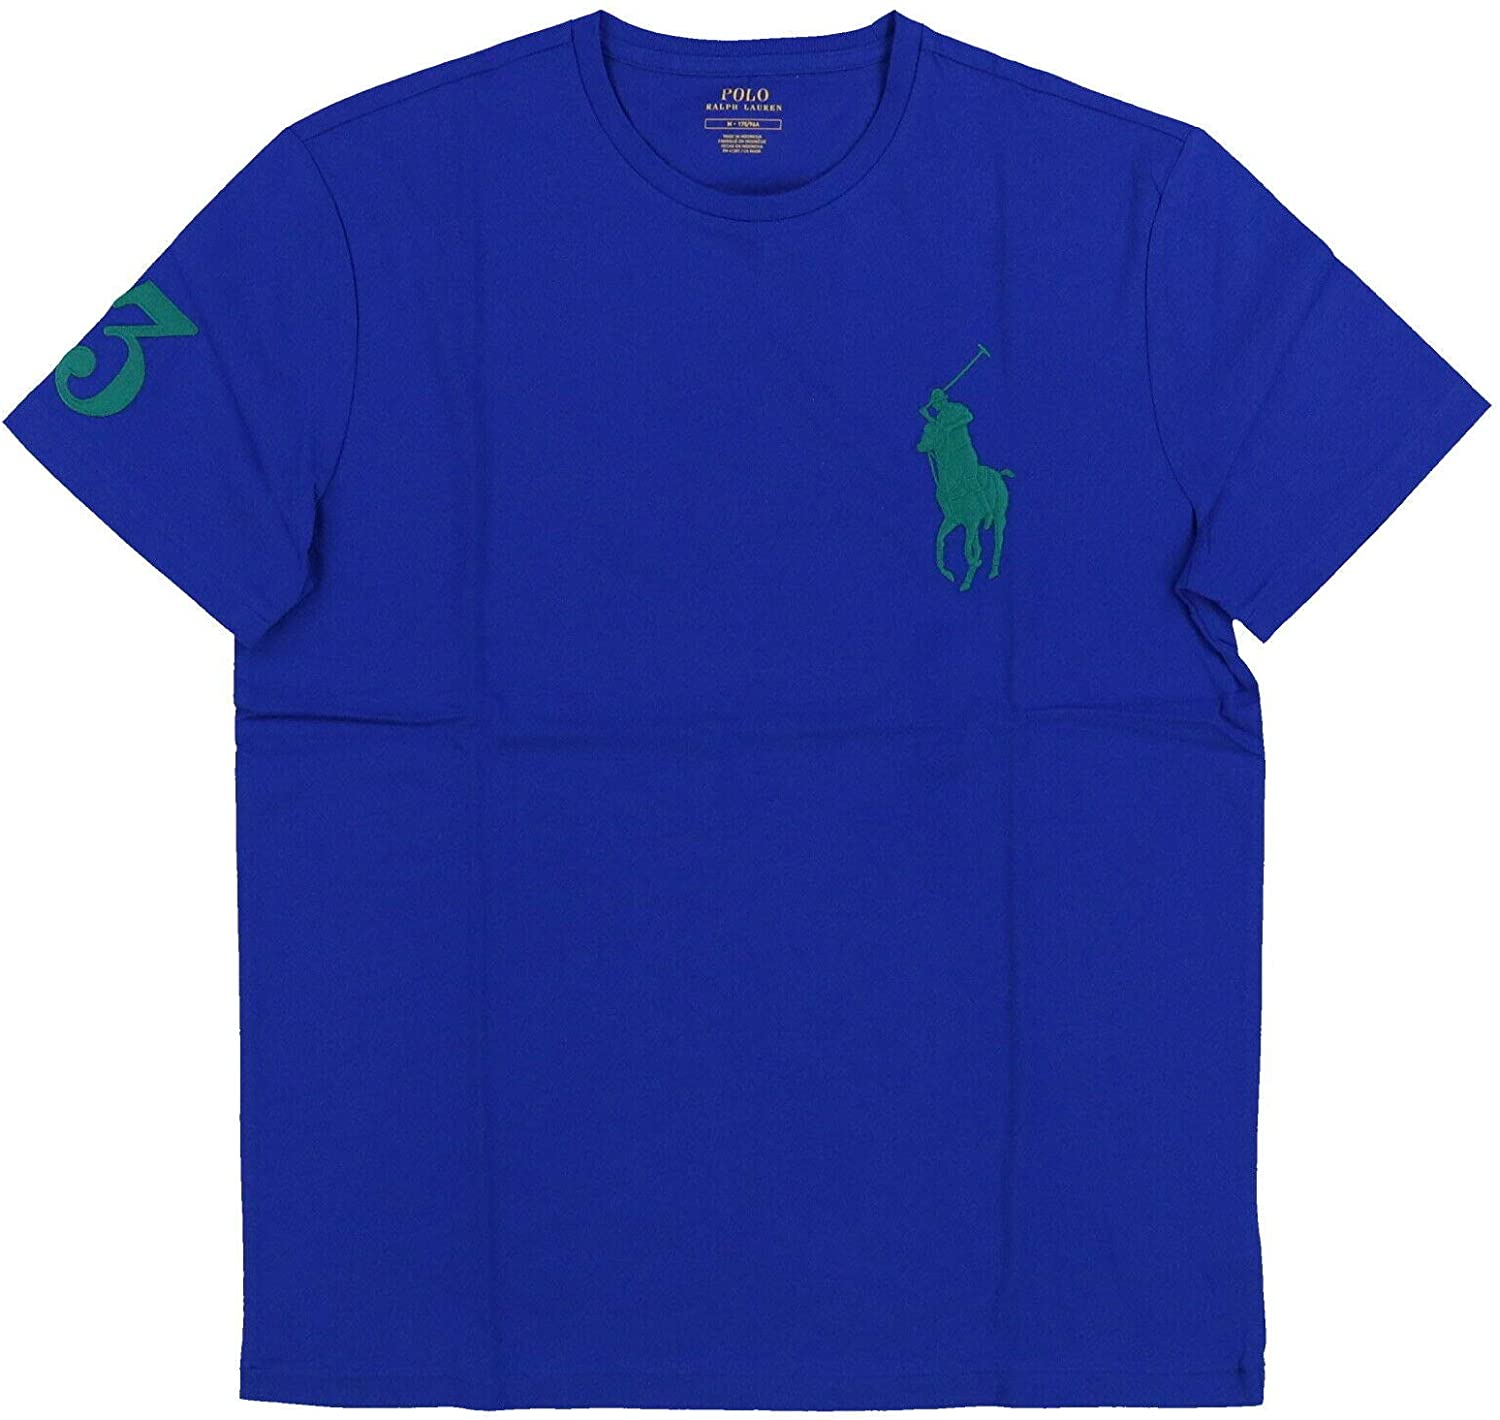 Polo Ralph Lauren Big Pony Crew Neck T-Shirt